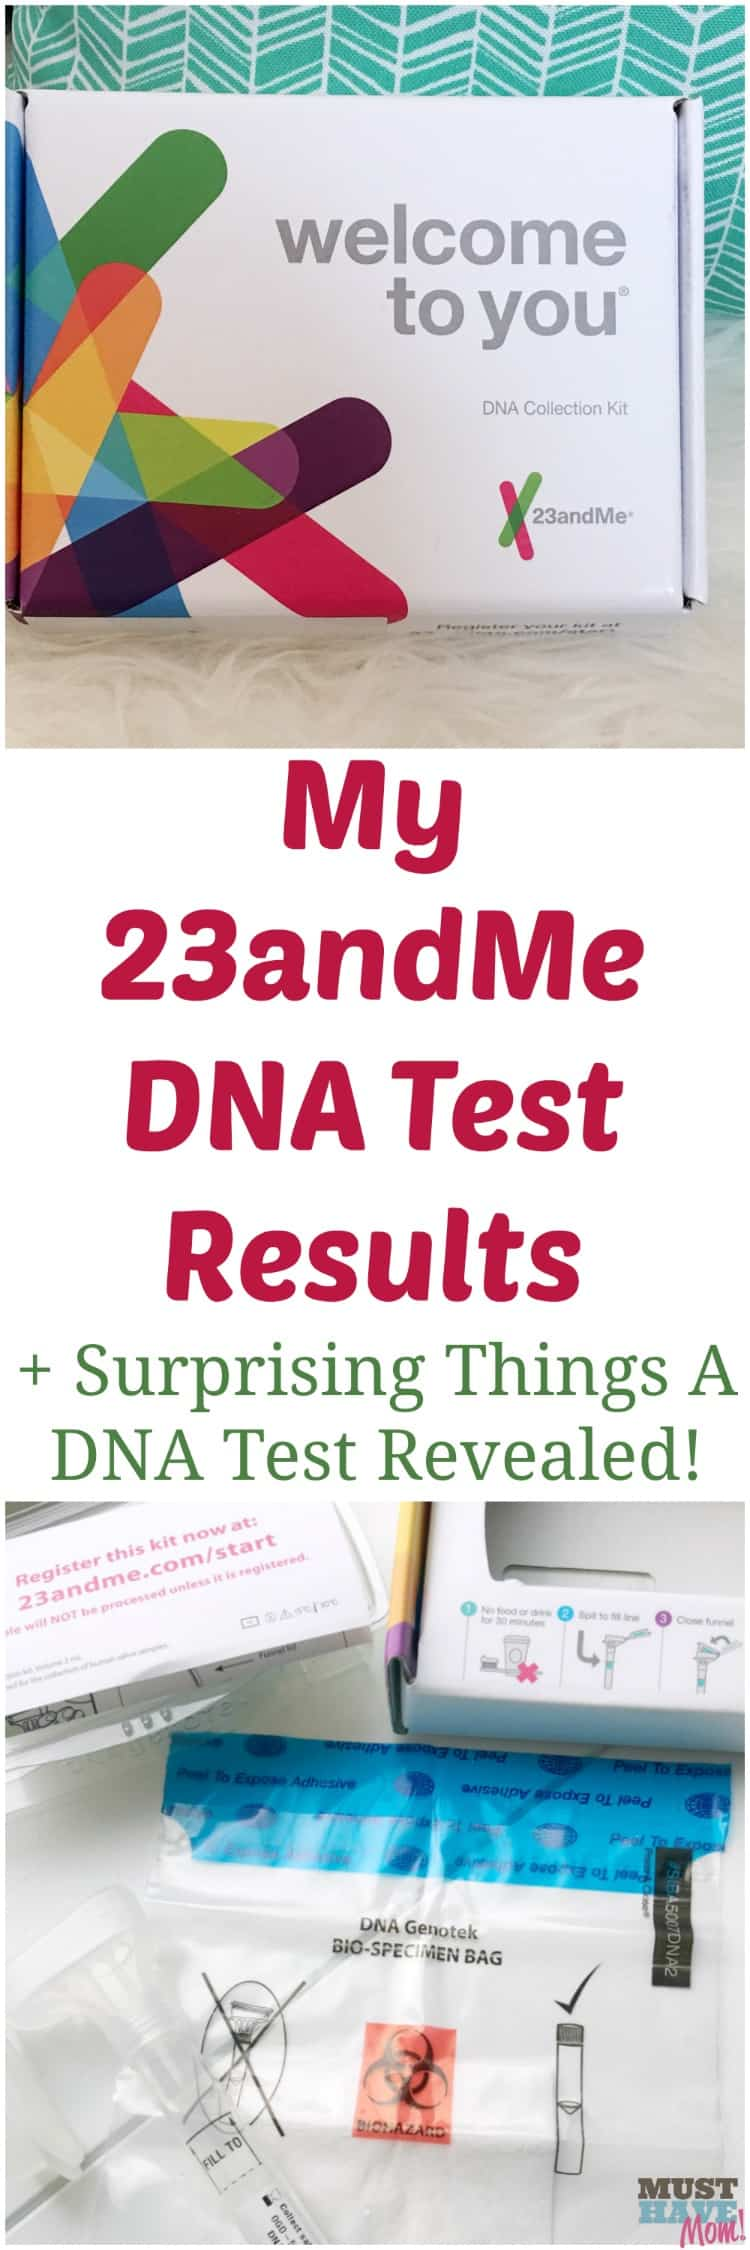 My 23andMe DNA test results + surprising things a DNA test revealed! See how easy the 23andMe process is and read my 23andMe review